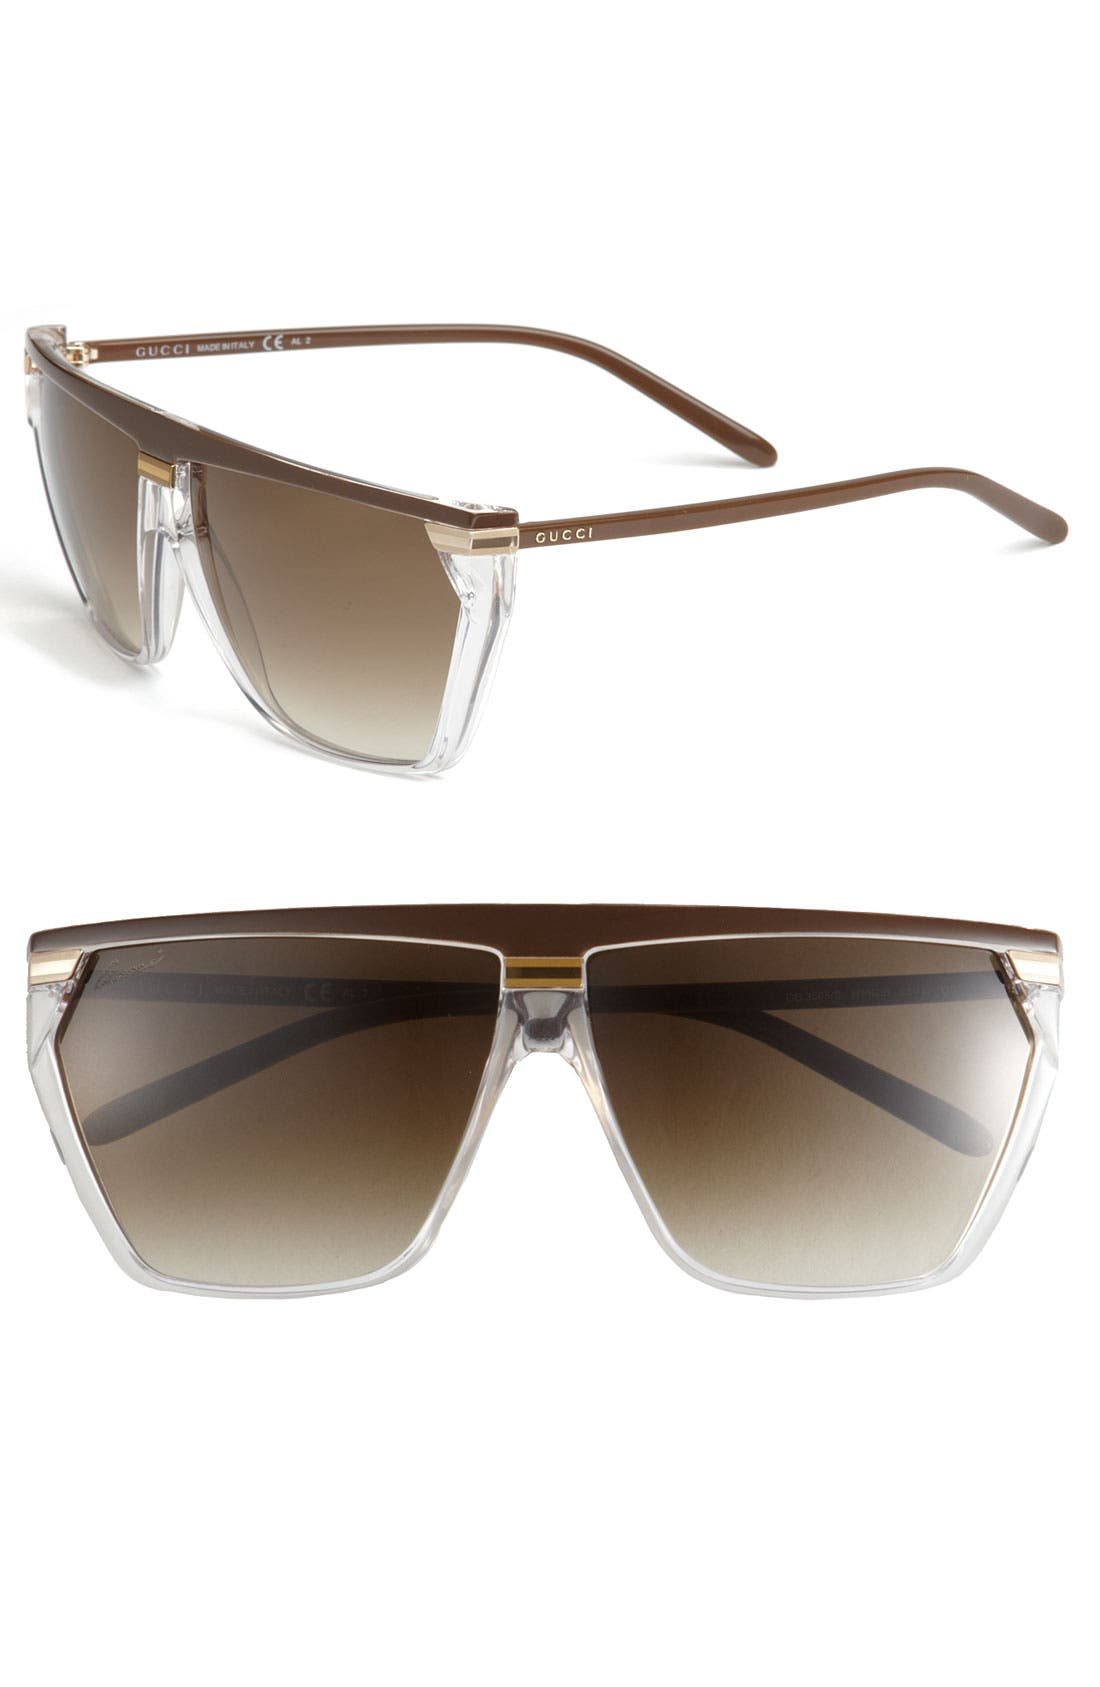 Alternate Image 1 Selected - Gucci Retro Sunglasses